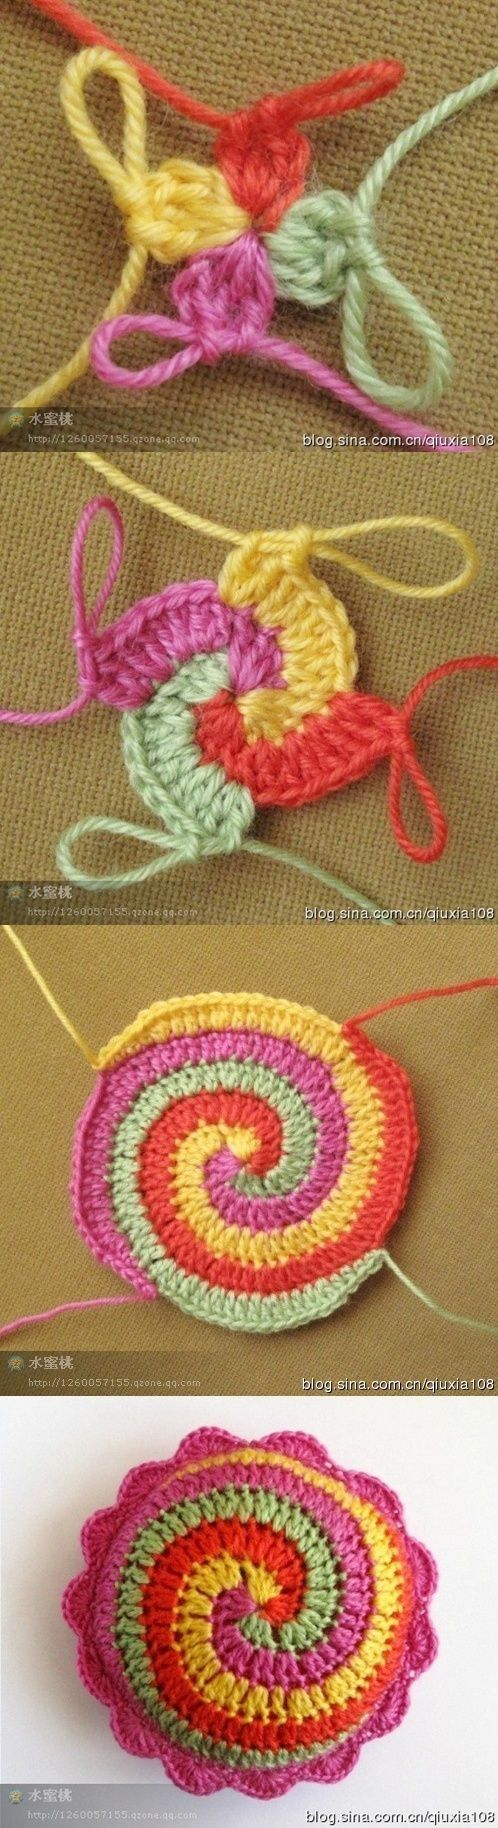 Spiral crochet by tiquis-miquis